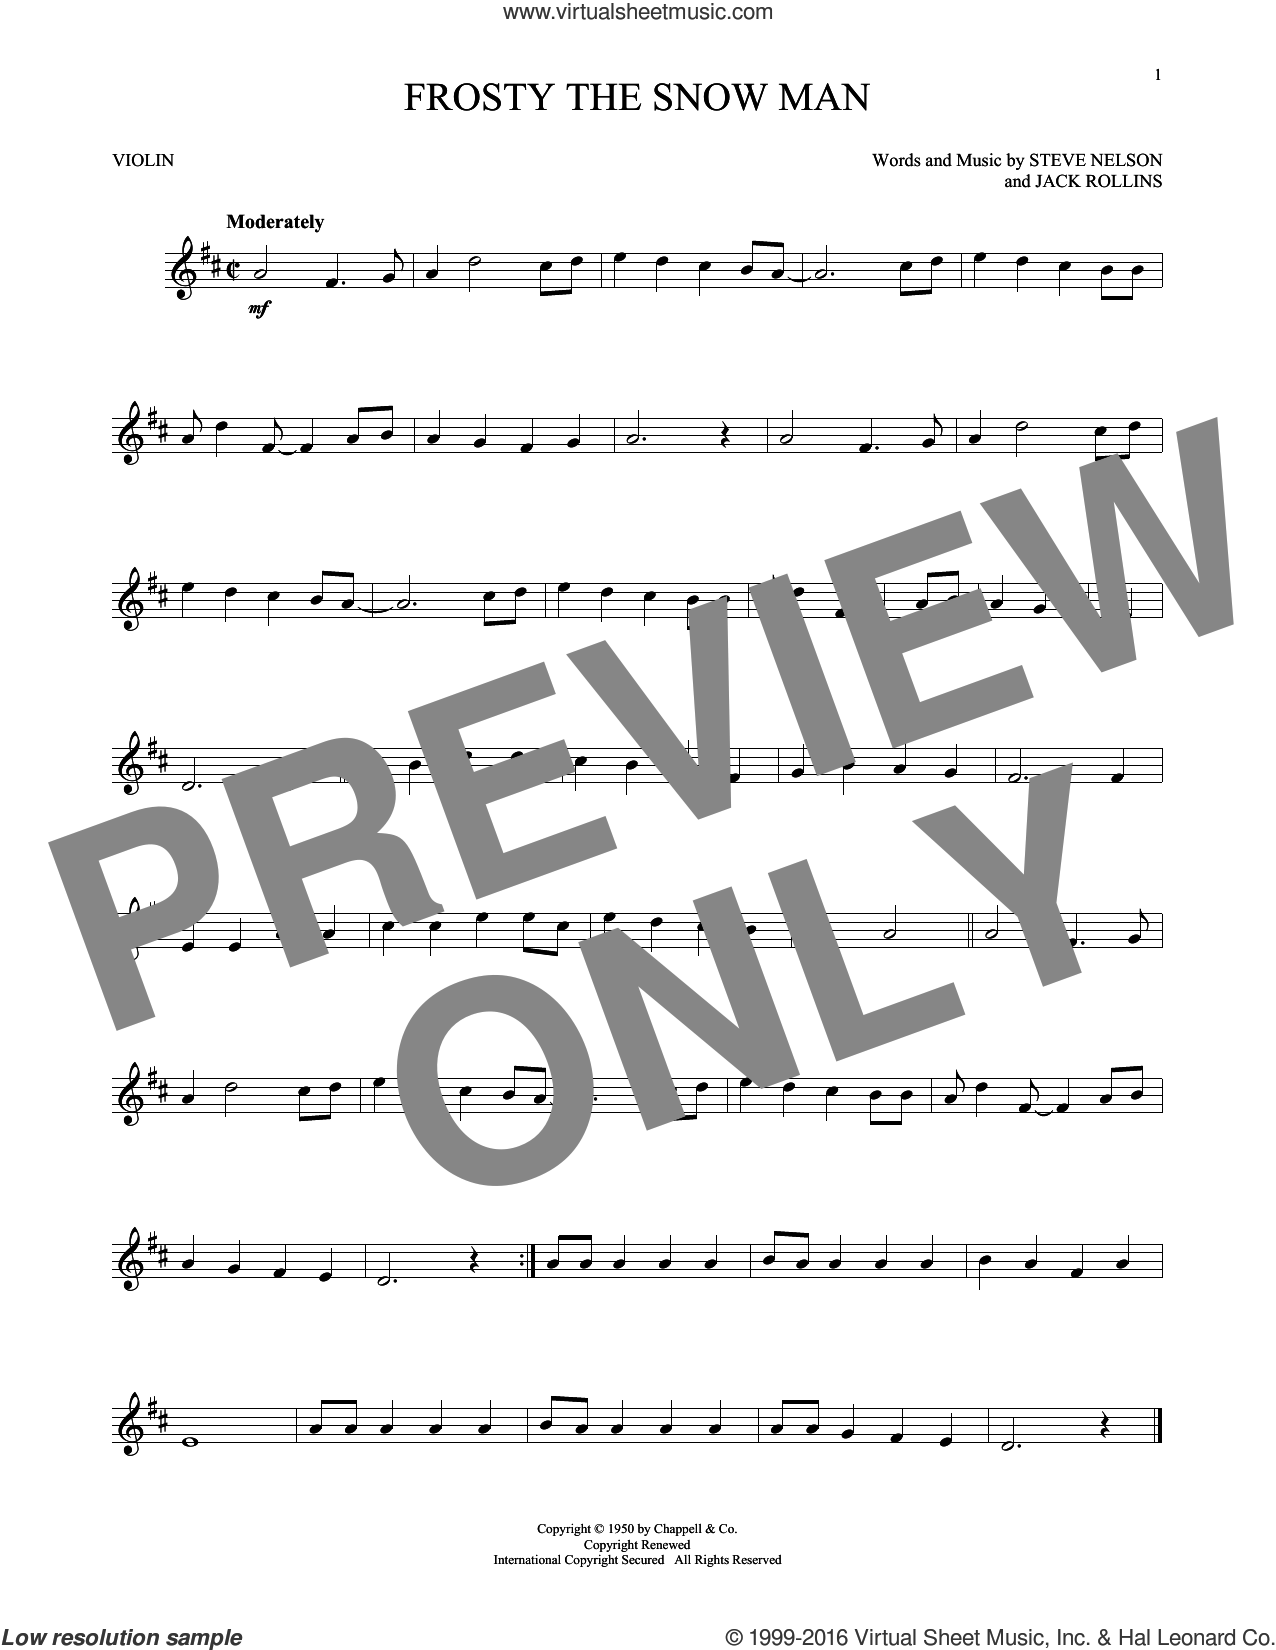 Frosty The Snow Man sheet music for violin solo by Steve Nelson, Jack Rollins and Jack Rollins & Steve Nelson, intermediate skill level